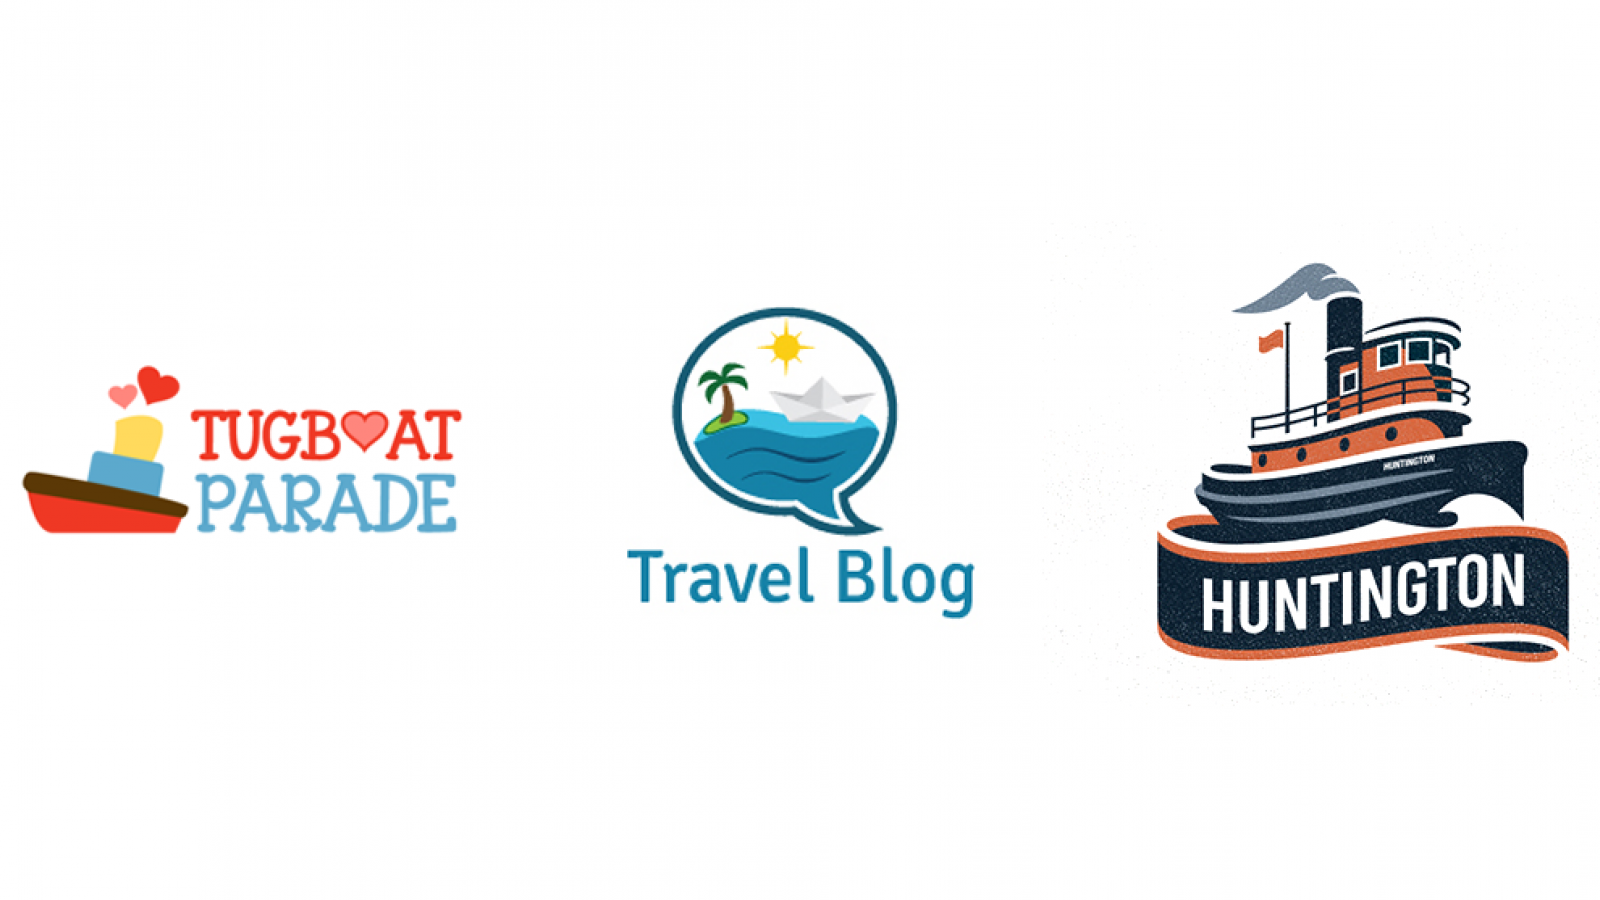 Logo Design: More Boats